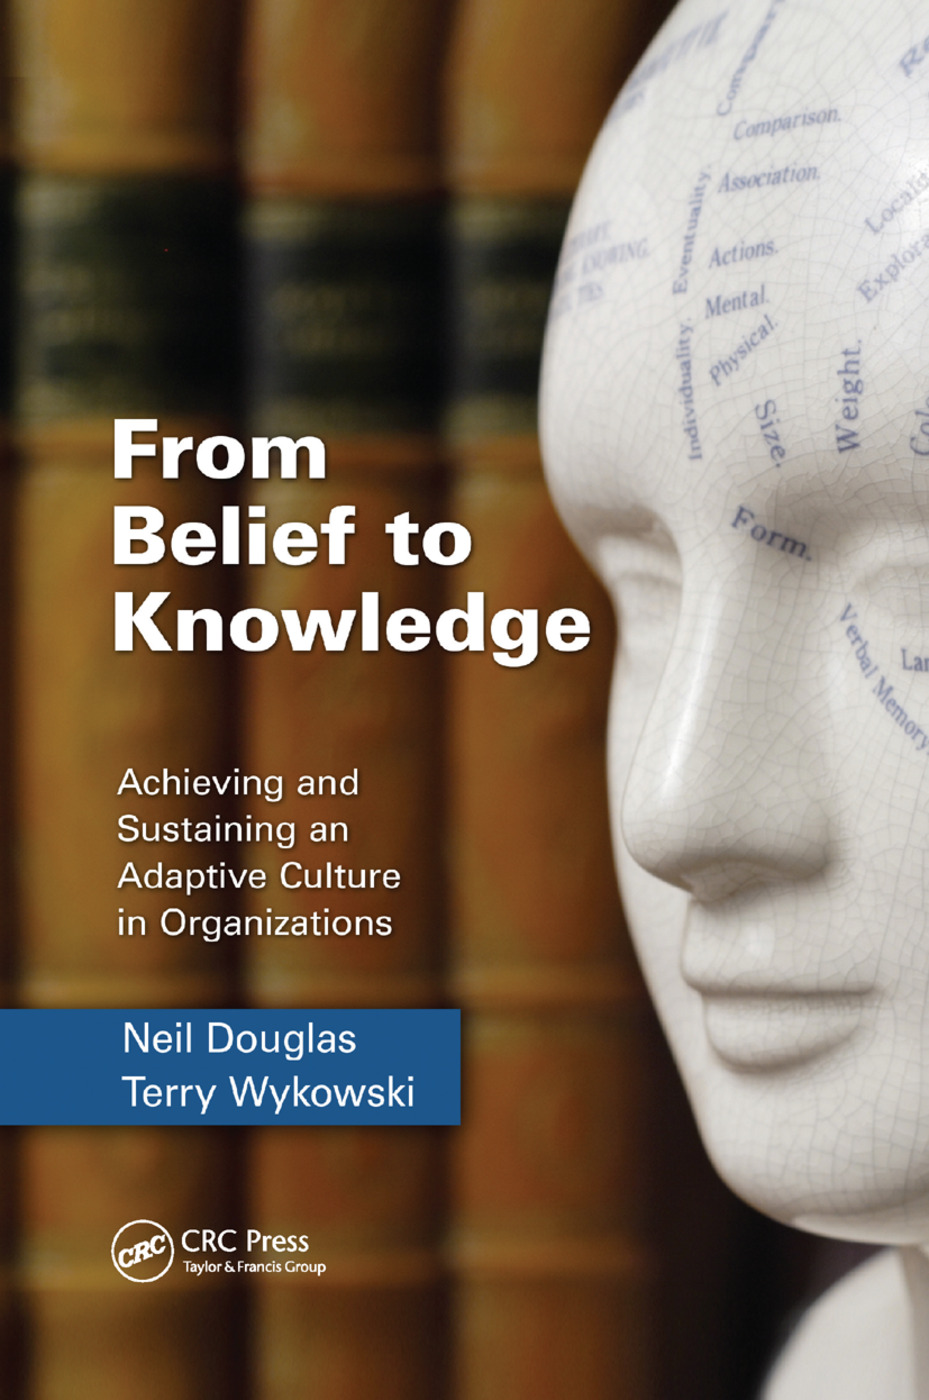 From Belief to Knowledge